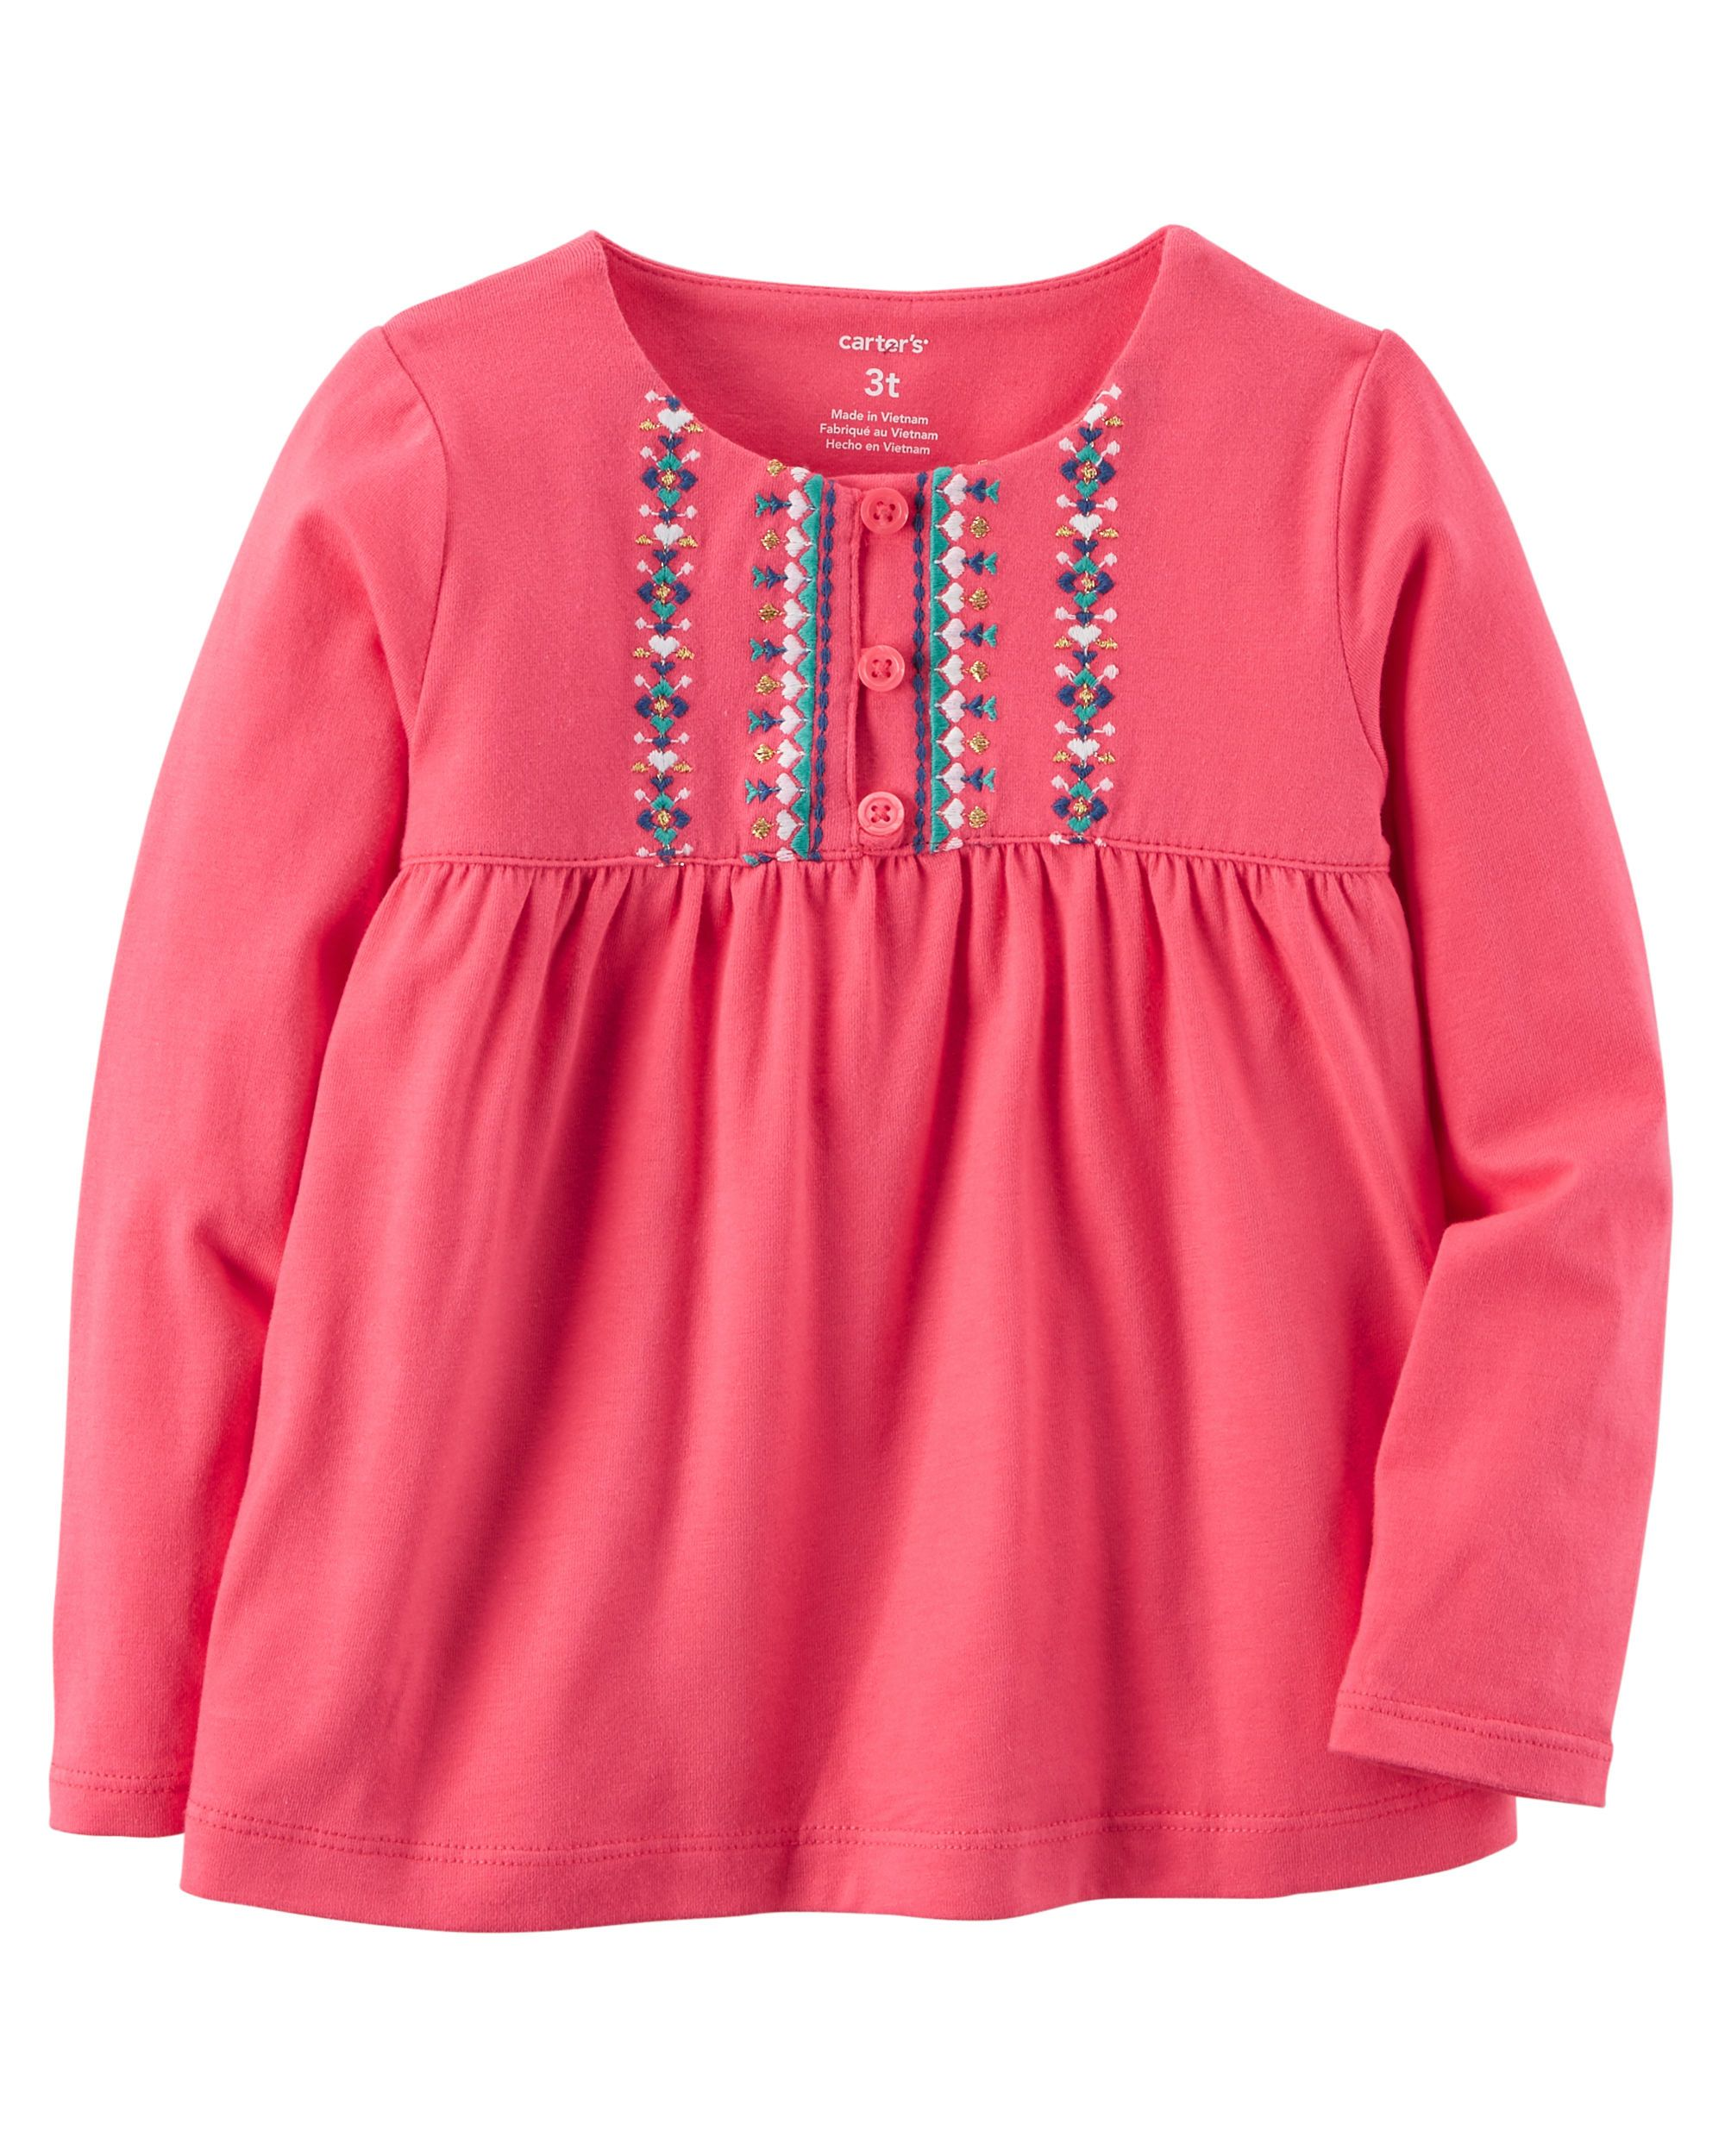 8cda36a7 Embroidered Babydoll Top | Toddler Girl | Baby girl tops, Toddler ...